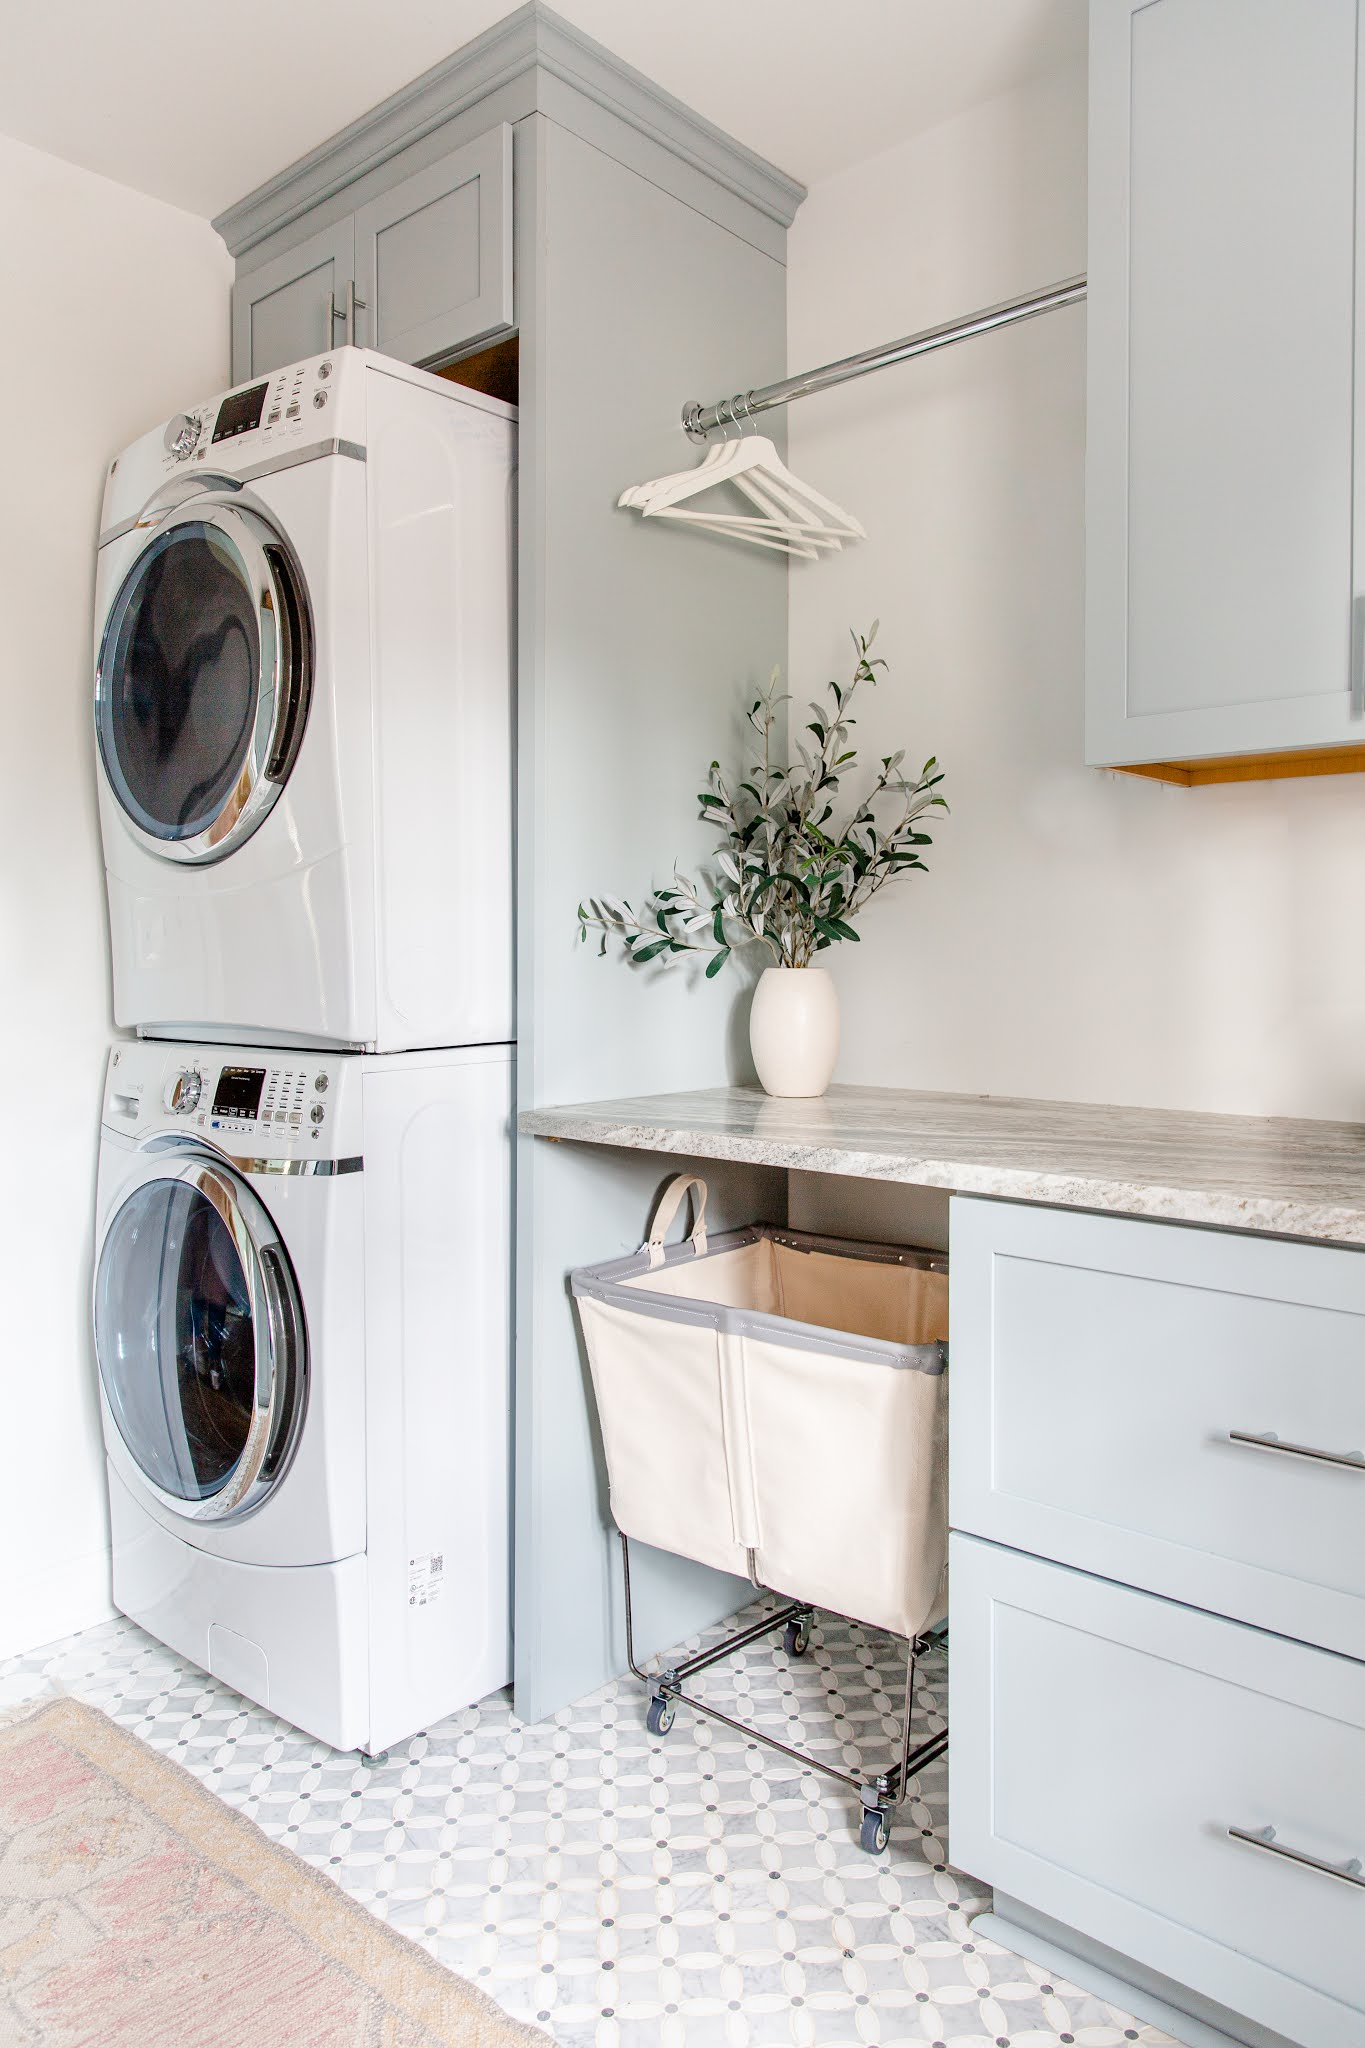 https://www.oliveandtate.com/2020/08/design-plan-laundry-utility-room-with.html